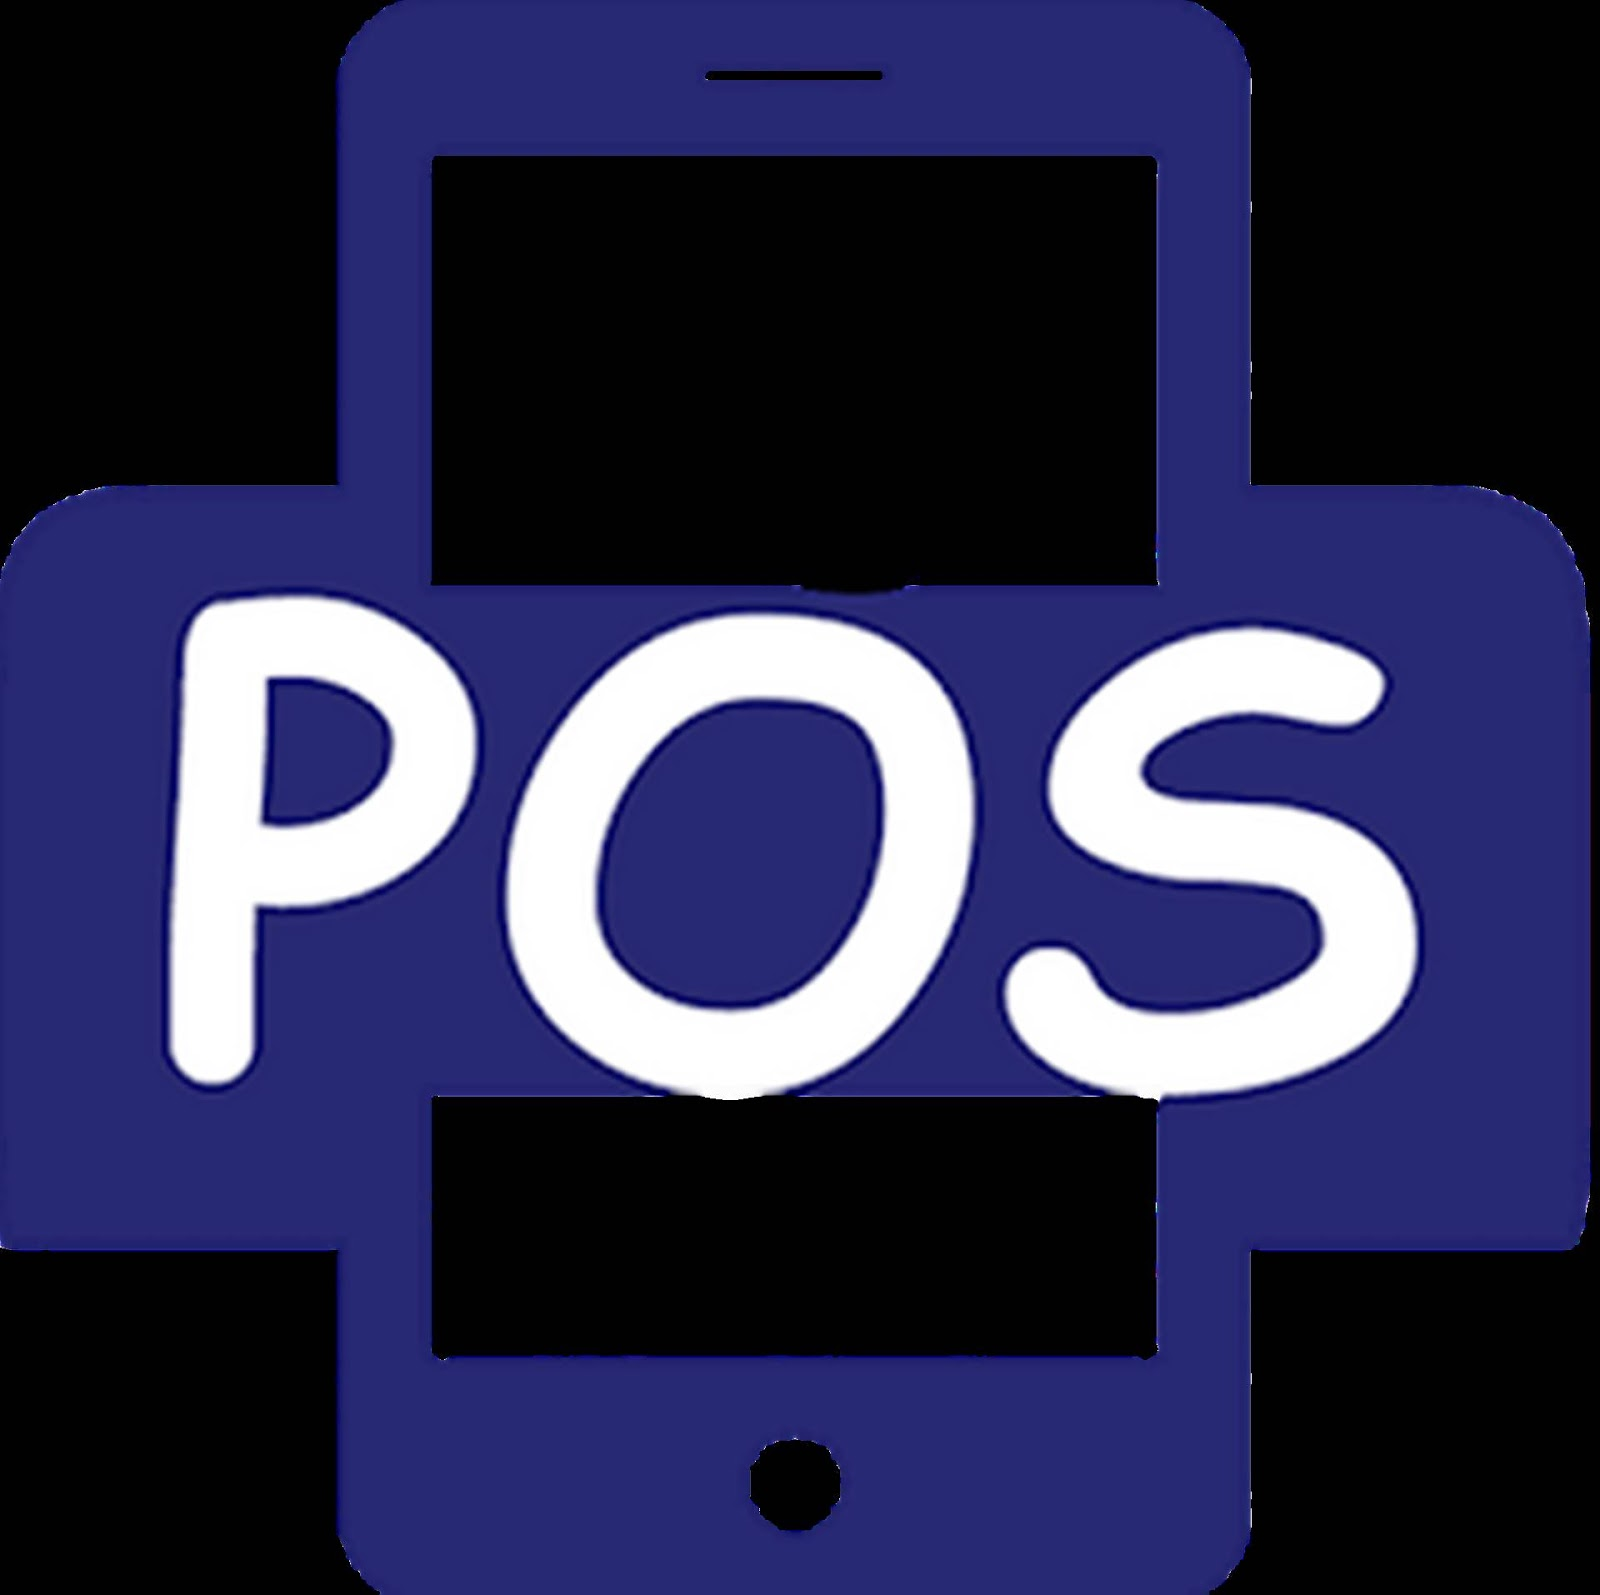 By Using the DigiPOS Credit and Bill Payment App